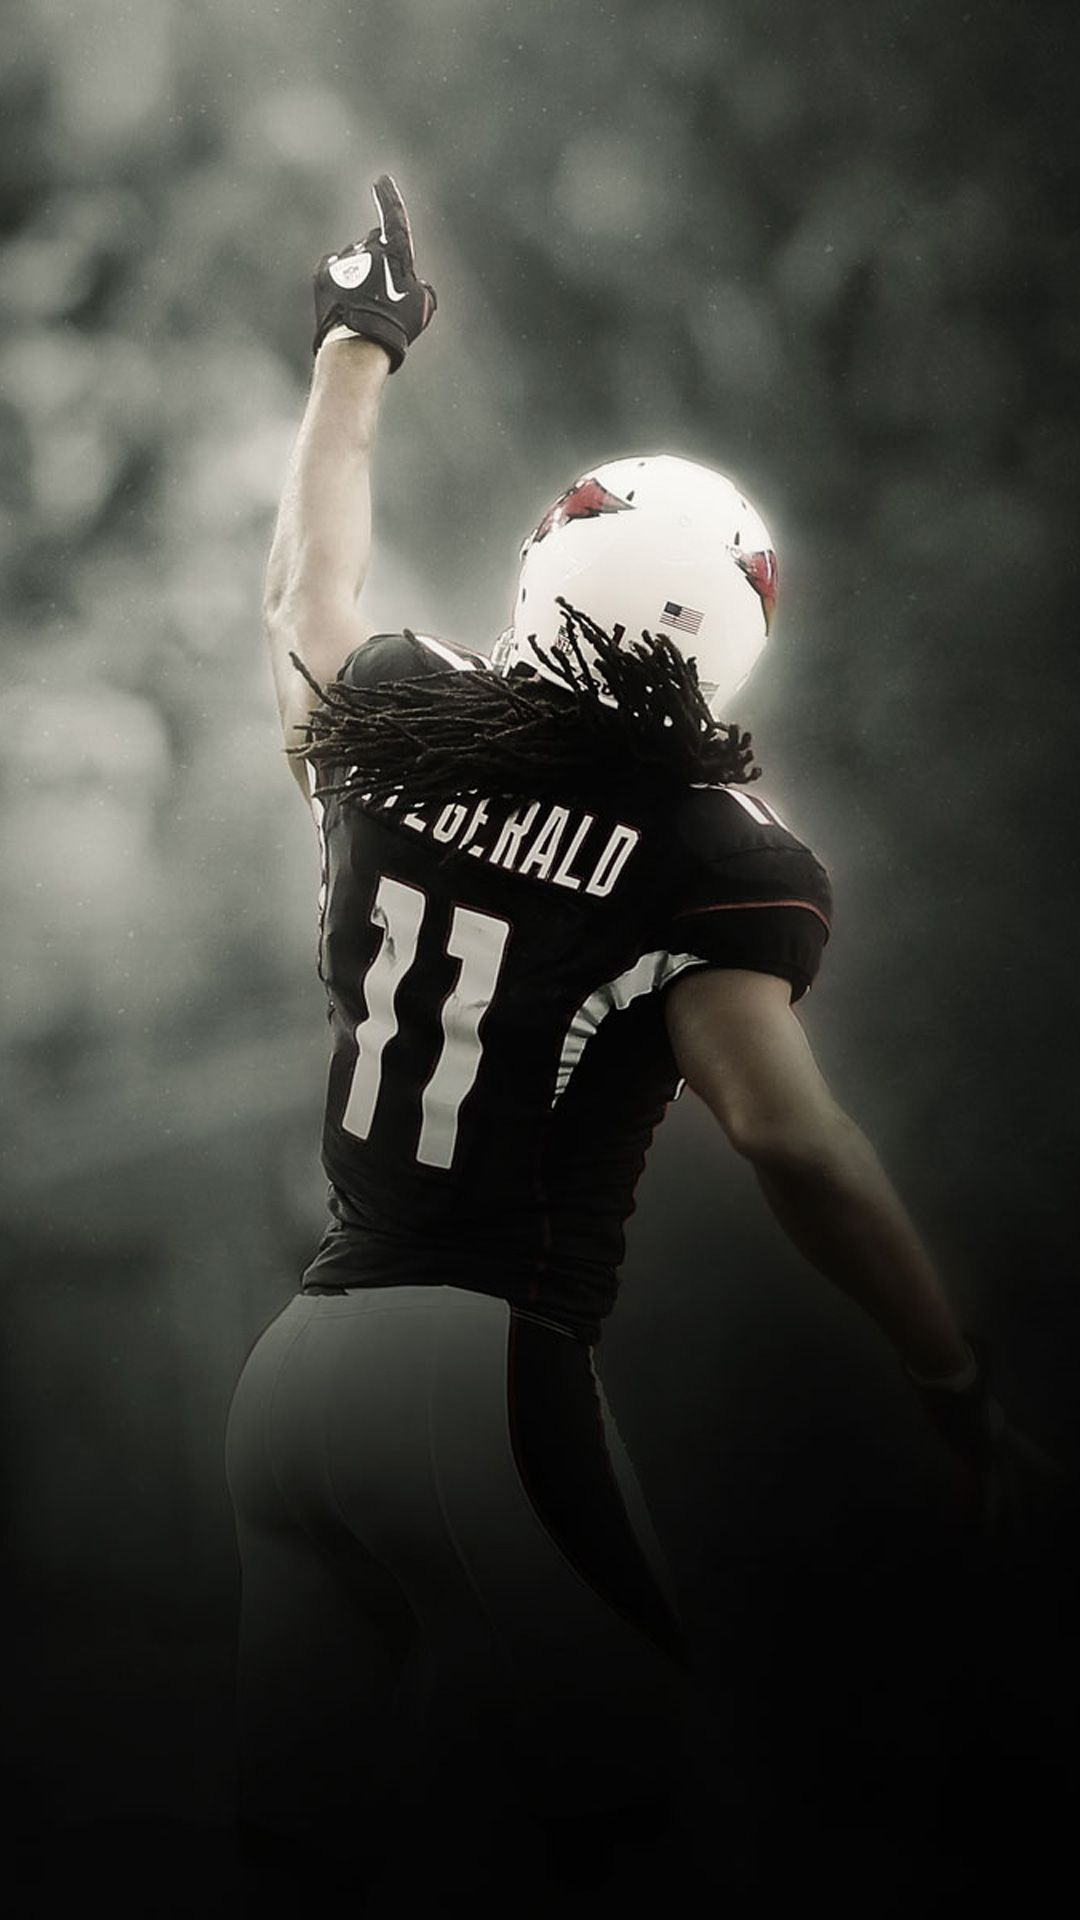 American football iphone wallpapers top free american - Arizona cardinals screensaver free ...